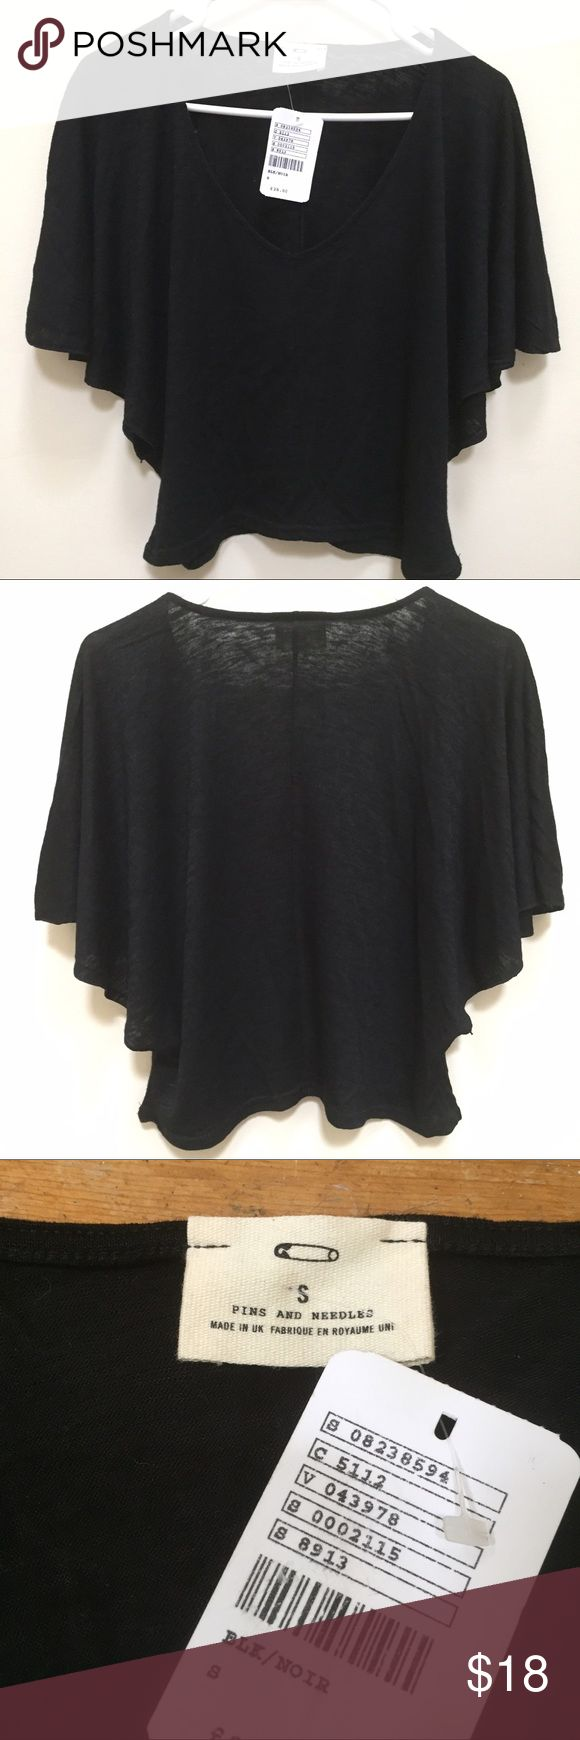 "Pins & Needles Black Bat Wing Sleeve UO Crop Top Loose fitting crop top; perfect for summer paired with high waisted shorts; Size S; true to size; approximate flat measurements 19"" long, 19"" bust; 13"" sleeves; Materials: 63% viscose; 37% percent polyester; Made & bought in UK 🇬🇧 Urban Outfitters Tops Crop Tops"